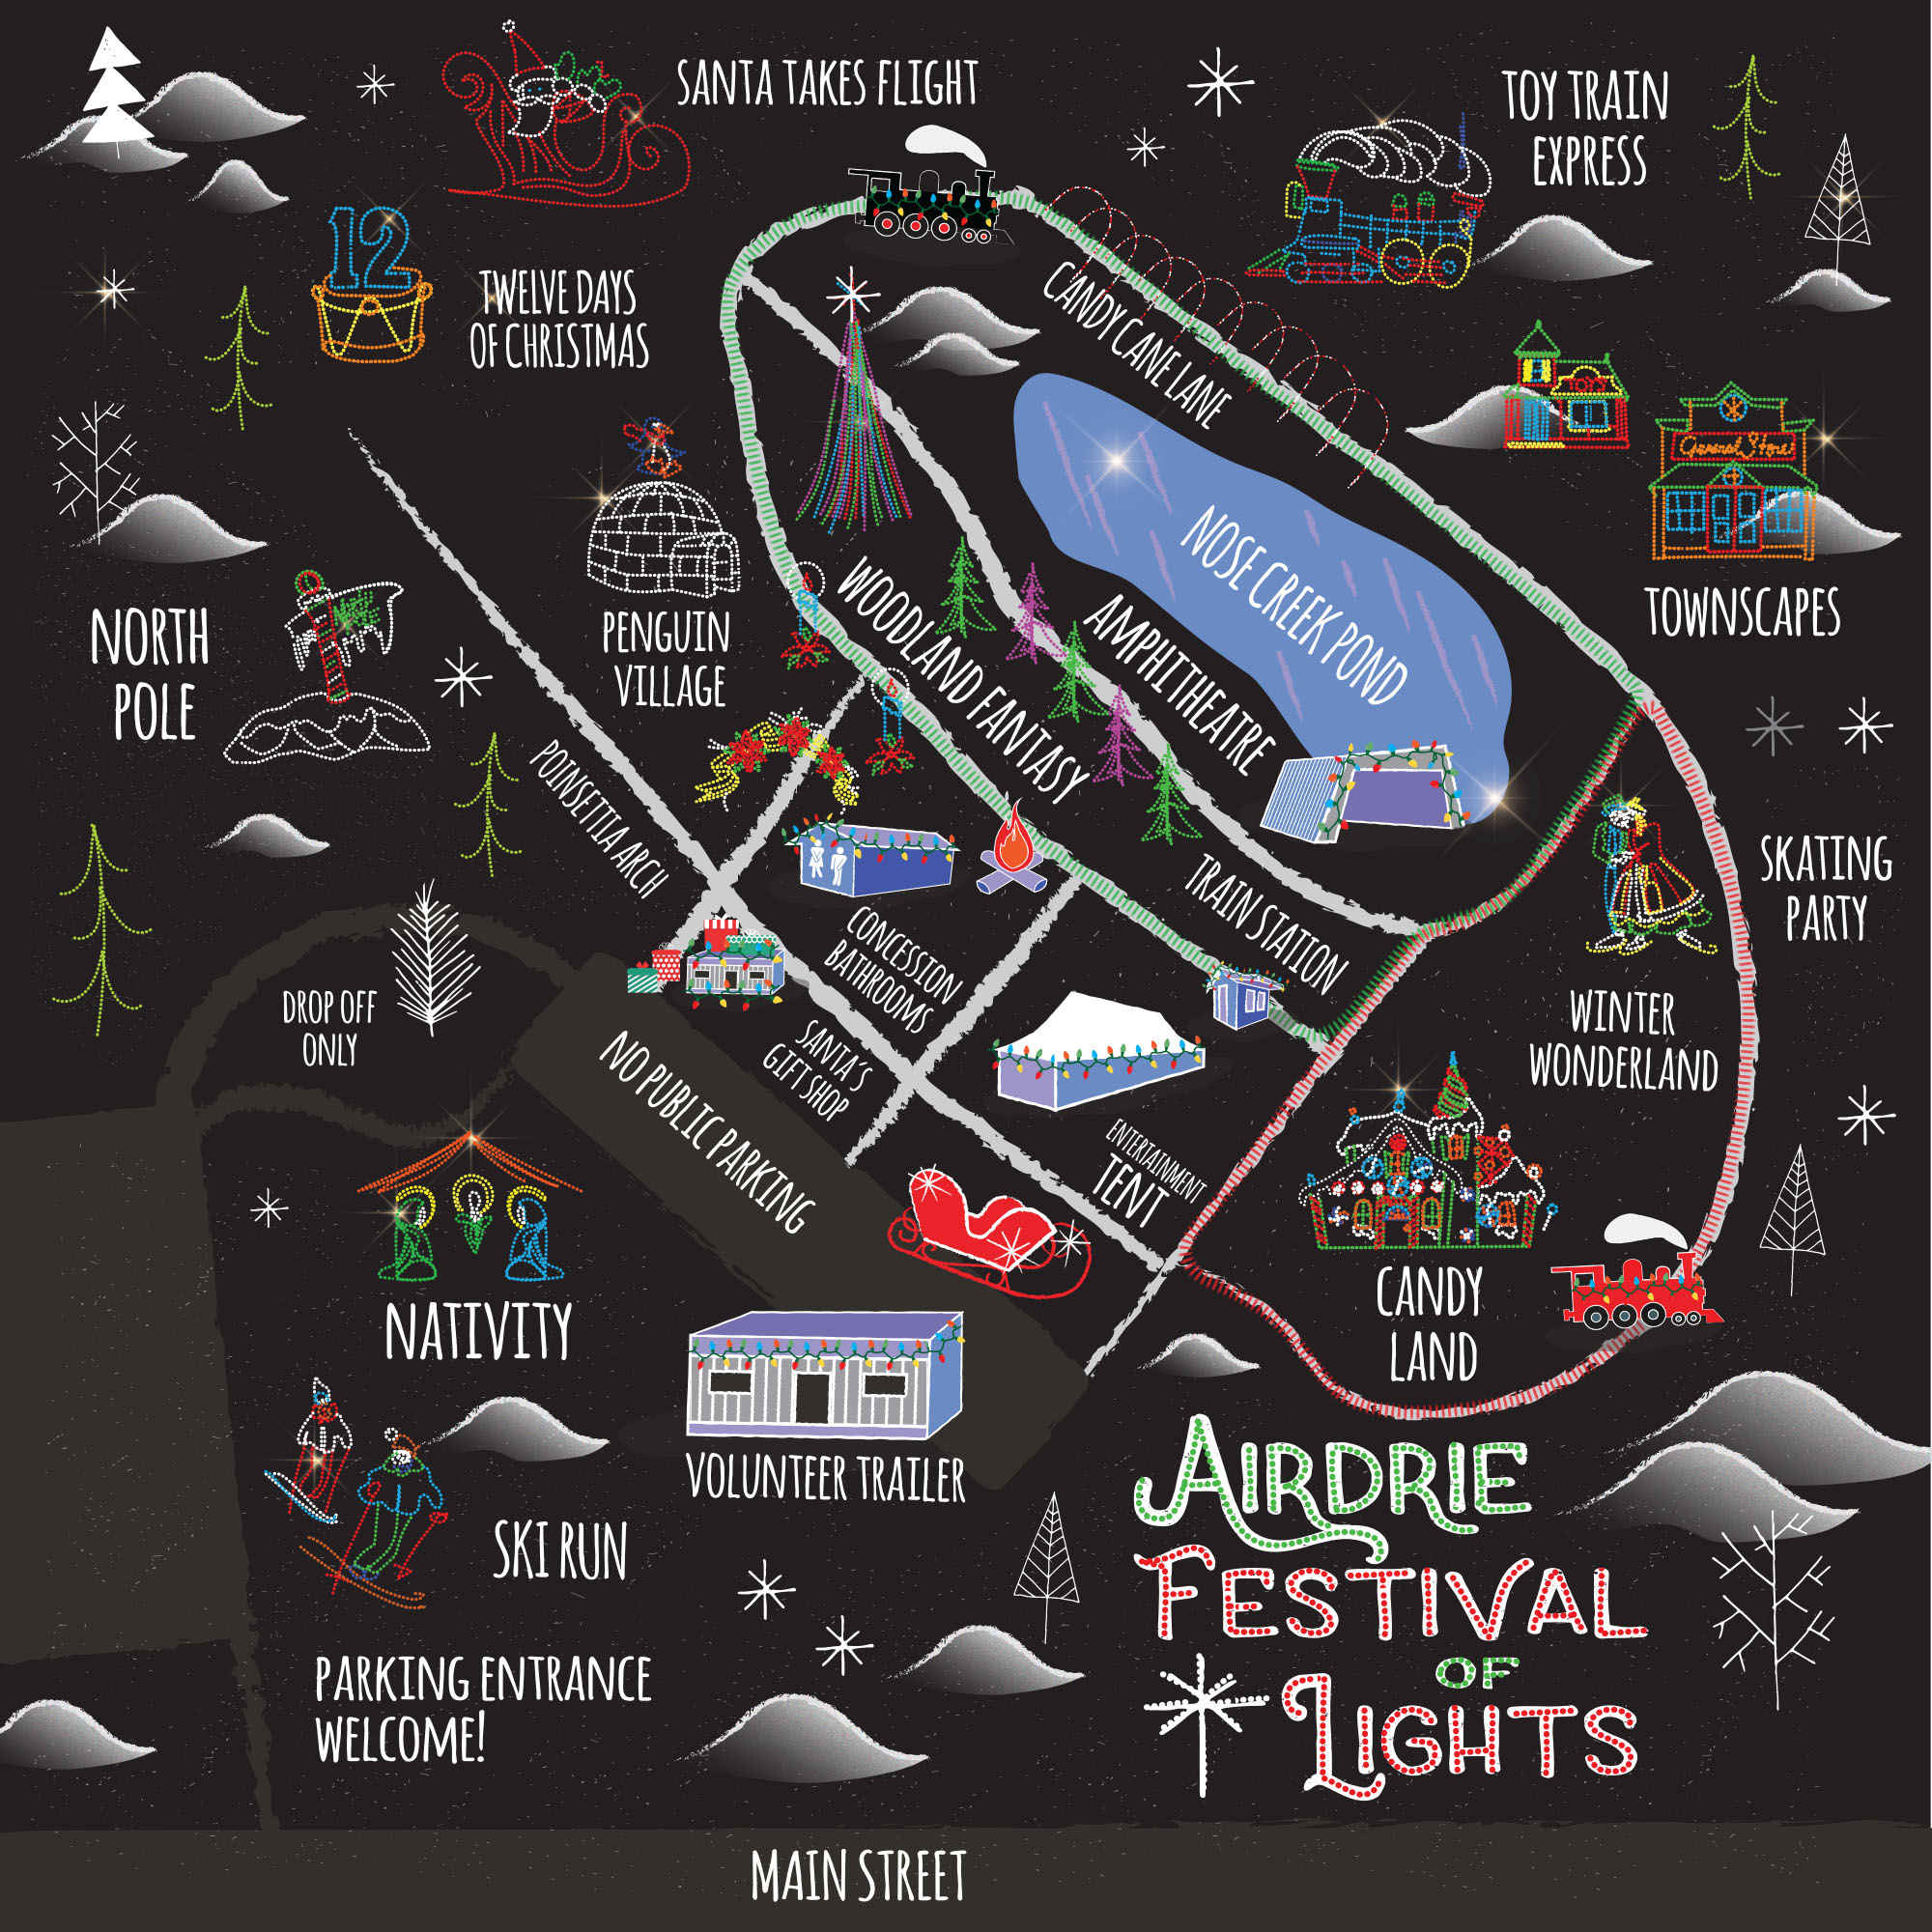 Airdrie Festival of Lights Map